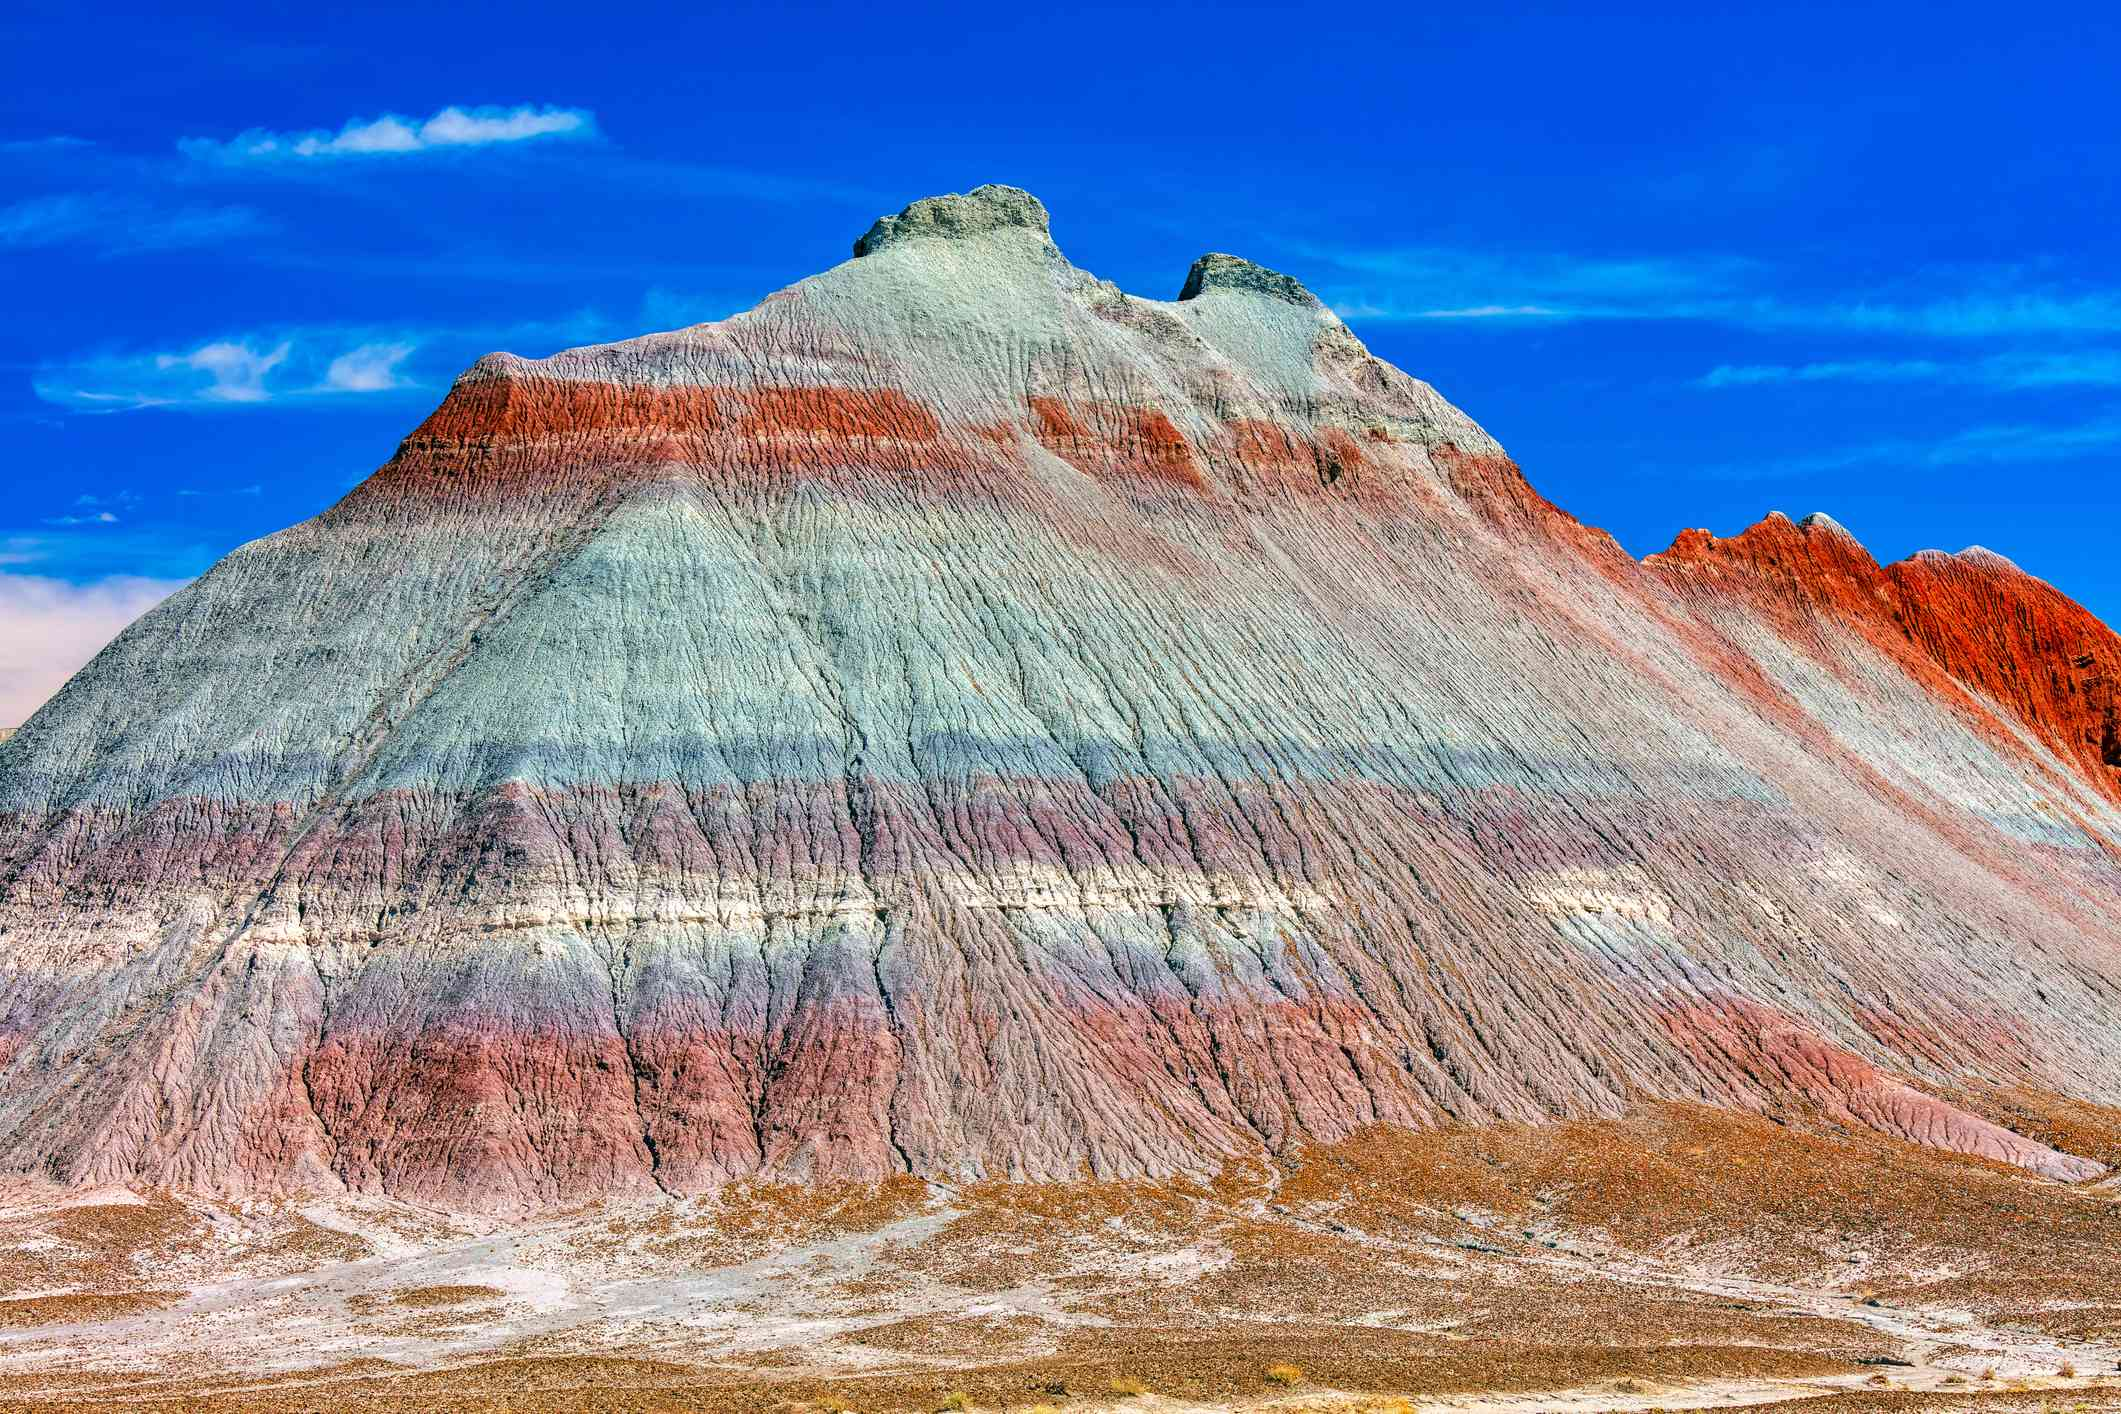 A mountain in the desert with layers of red, gray, blue, and purple stone